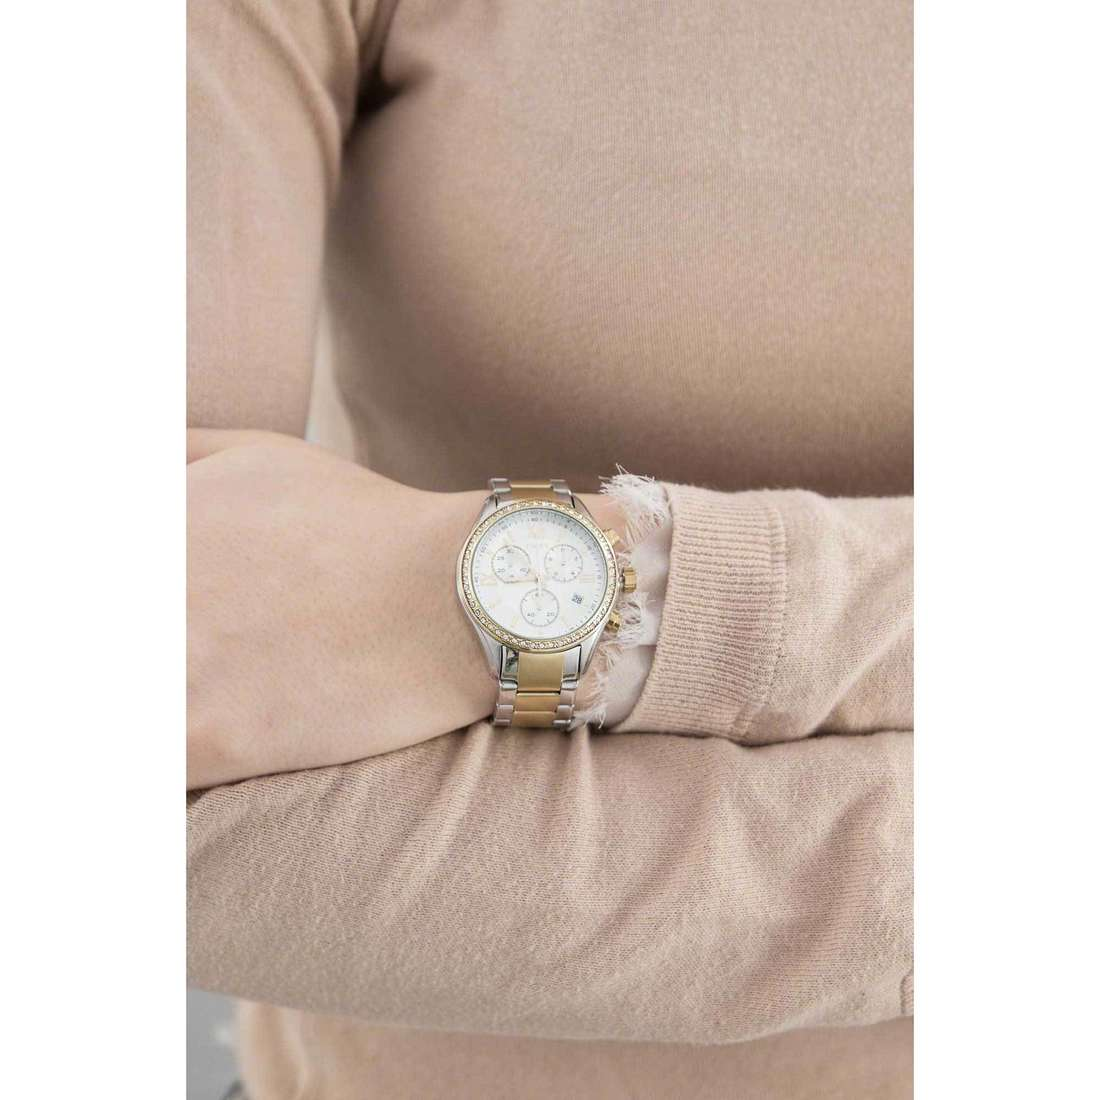 Timex chronographes Women's Collection femme TW2P67000 indosso